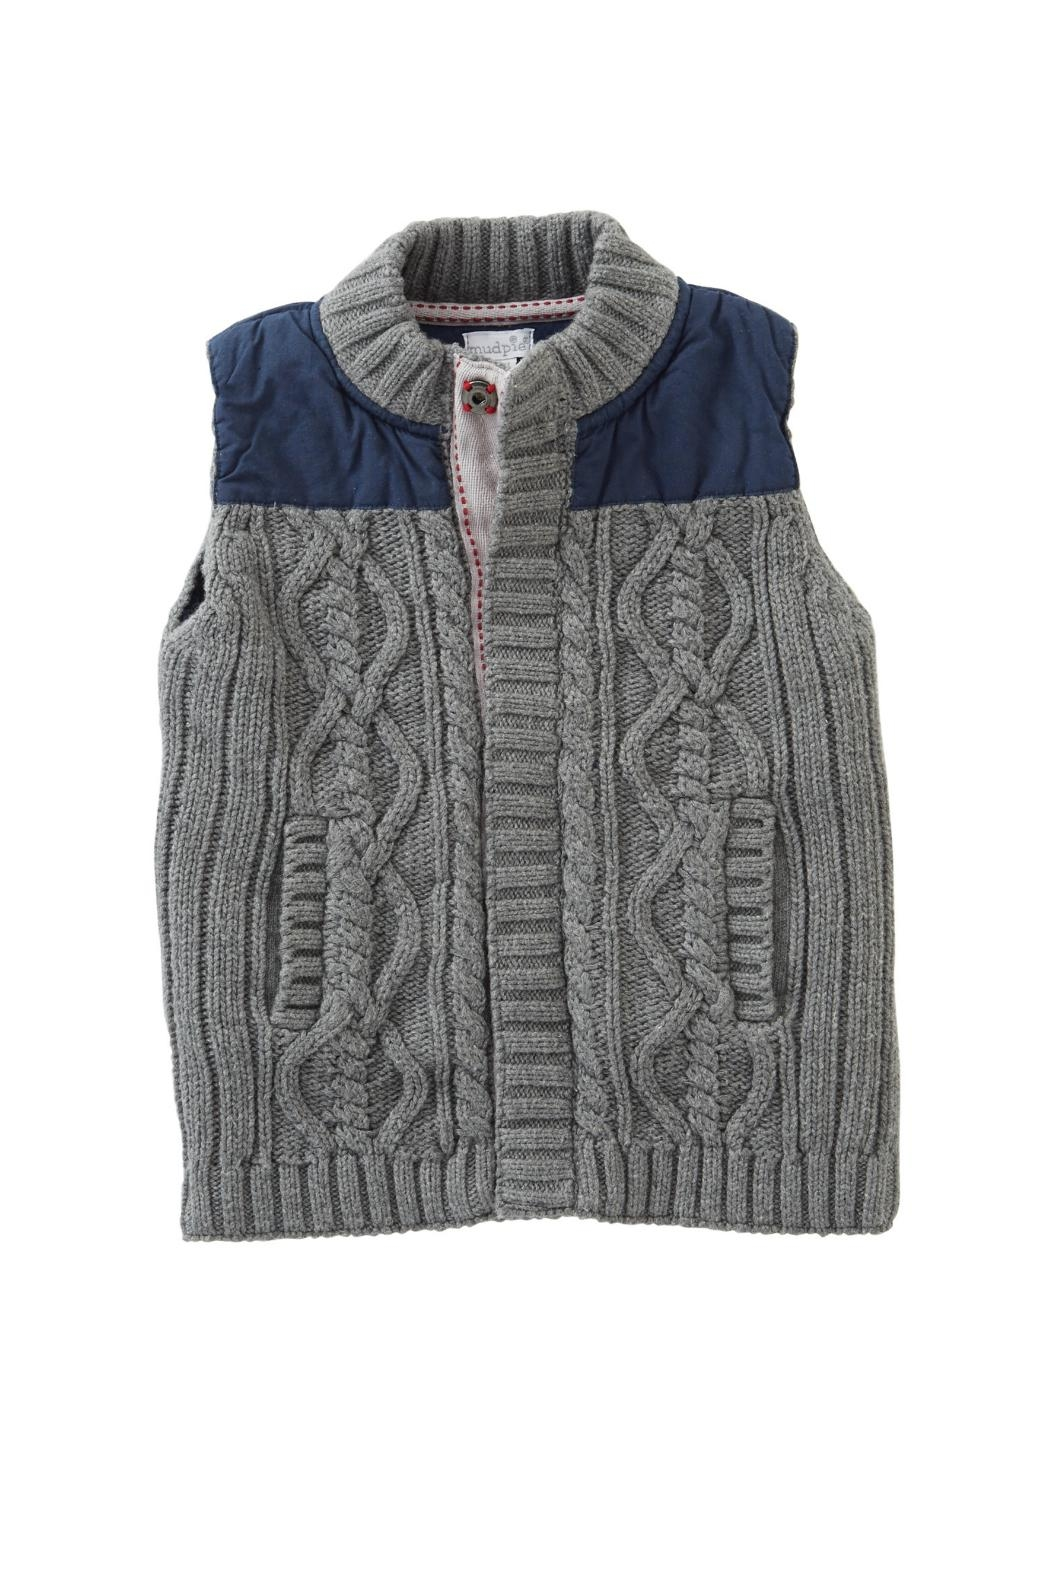 Mud Pie Knit Sweater Vest from Oklahoma by Wystle — Shoptiques